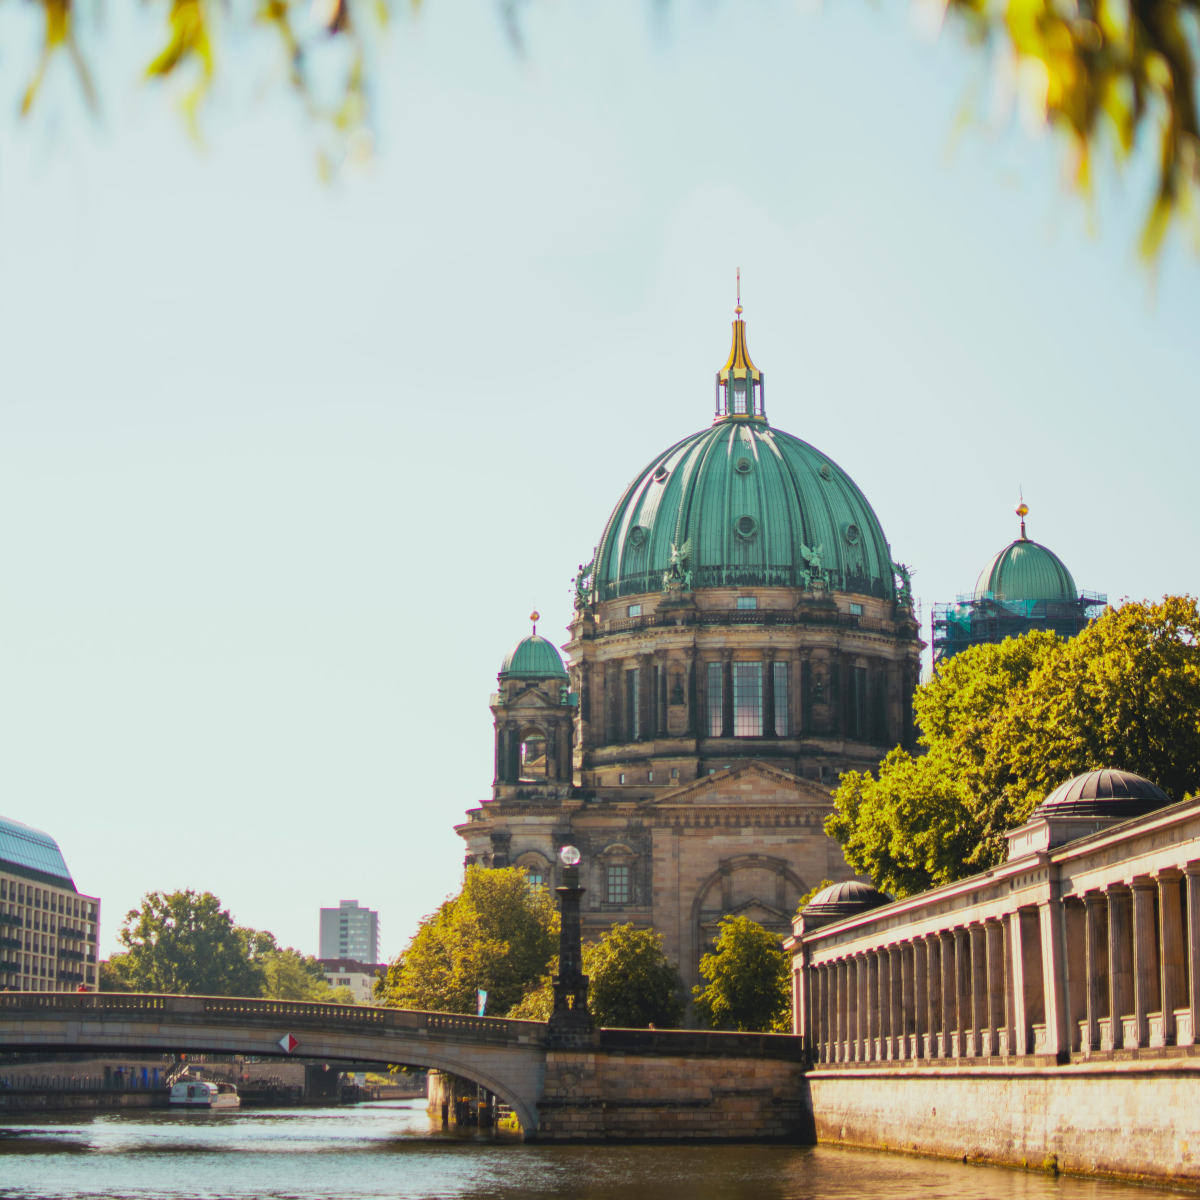 Stock image of a cathedral located in Berlin, Germany.